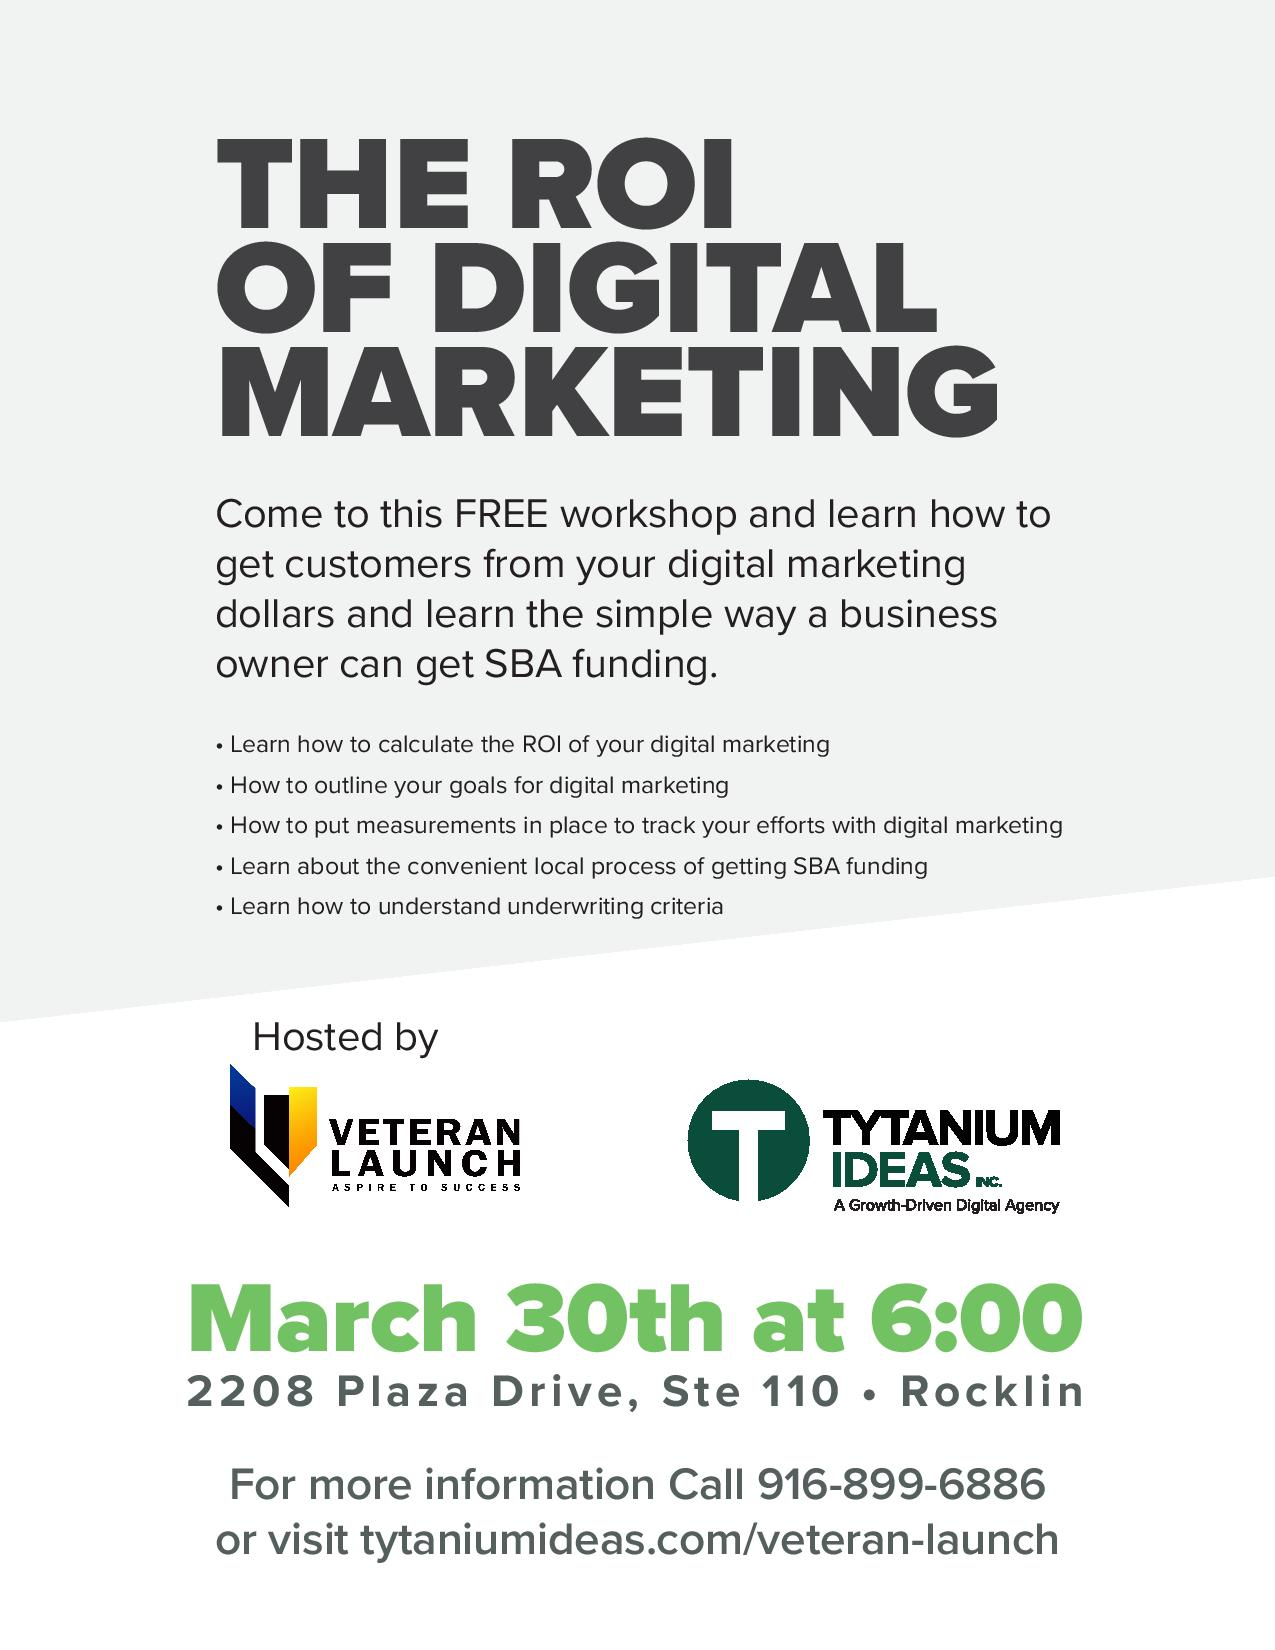 Veteran Launch Free Digital Marketing Networking Event Flyer